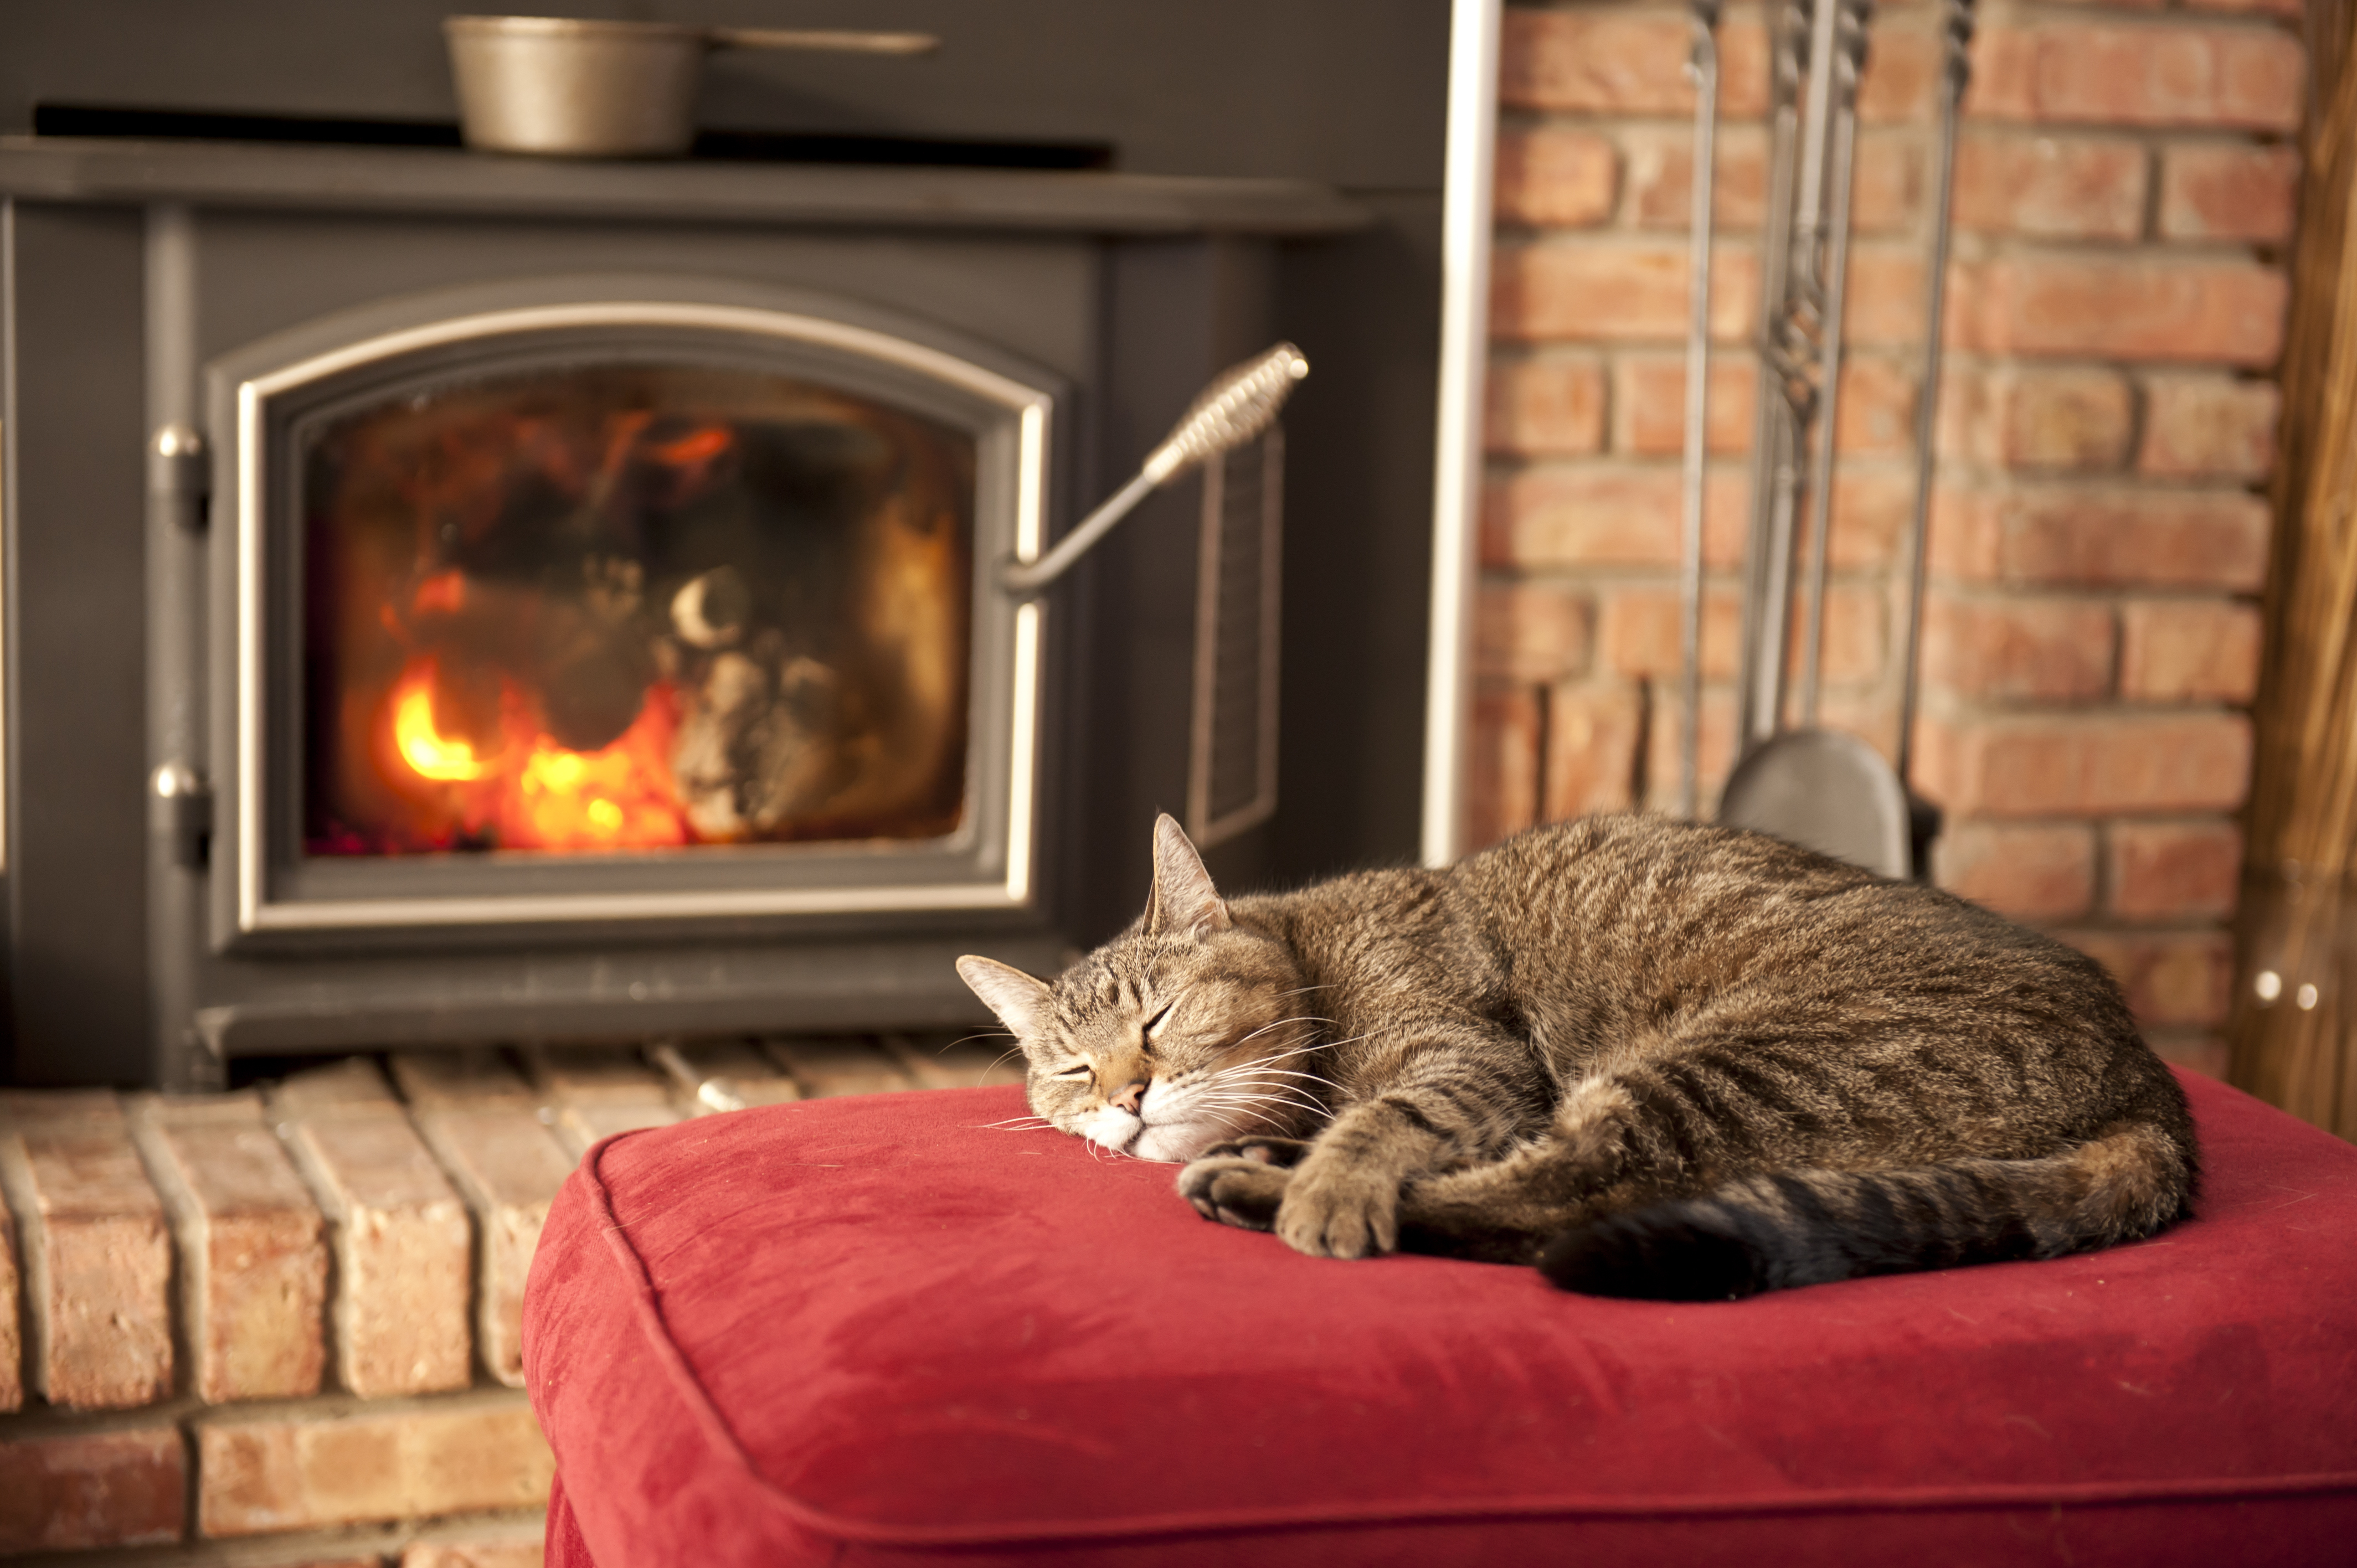 Possible Reasons Smoke Is Backing Up Into Wood Stove | Home Guides